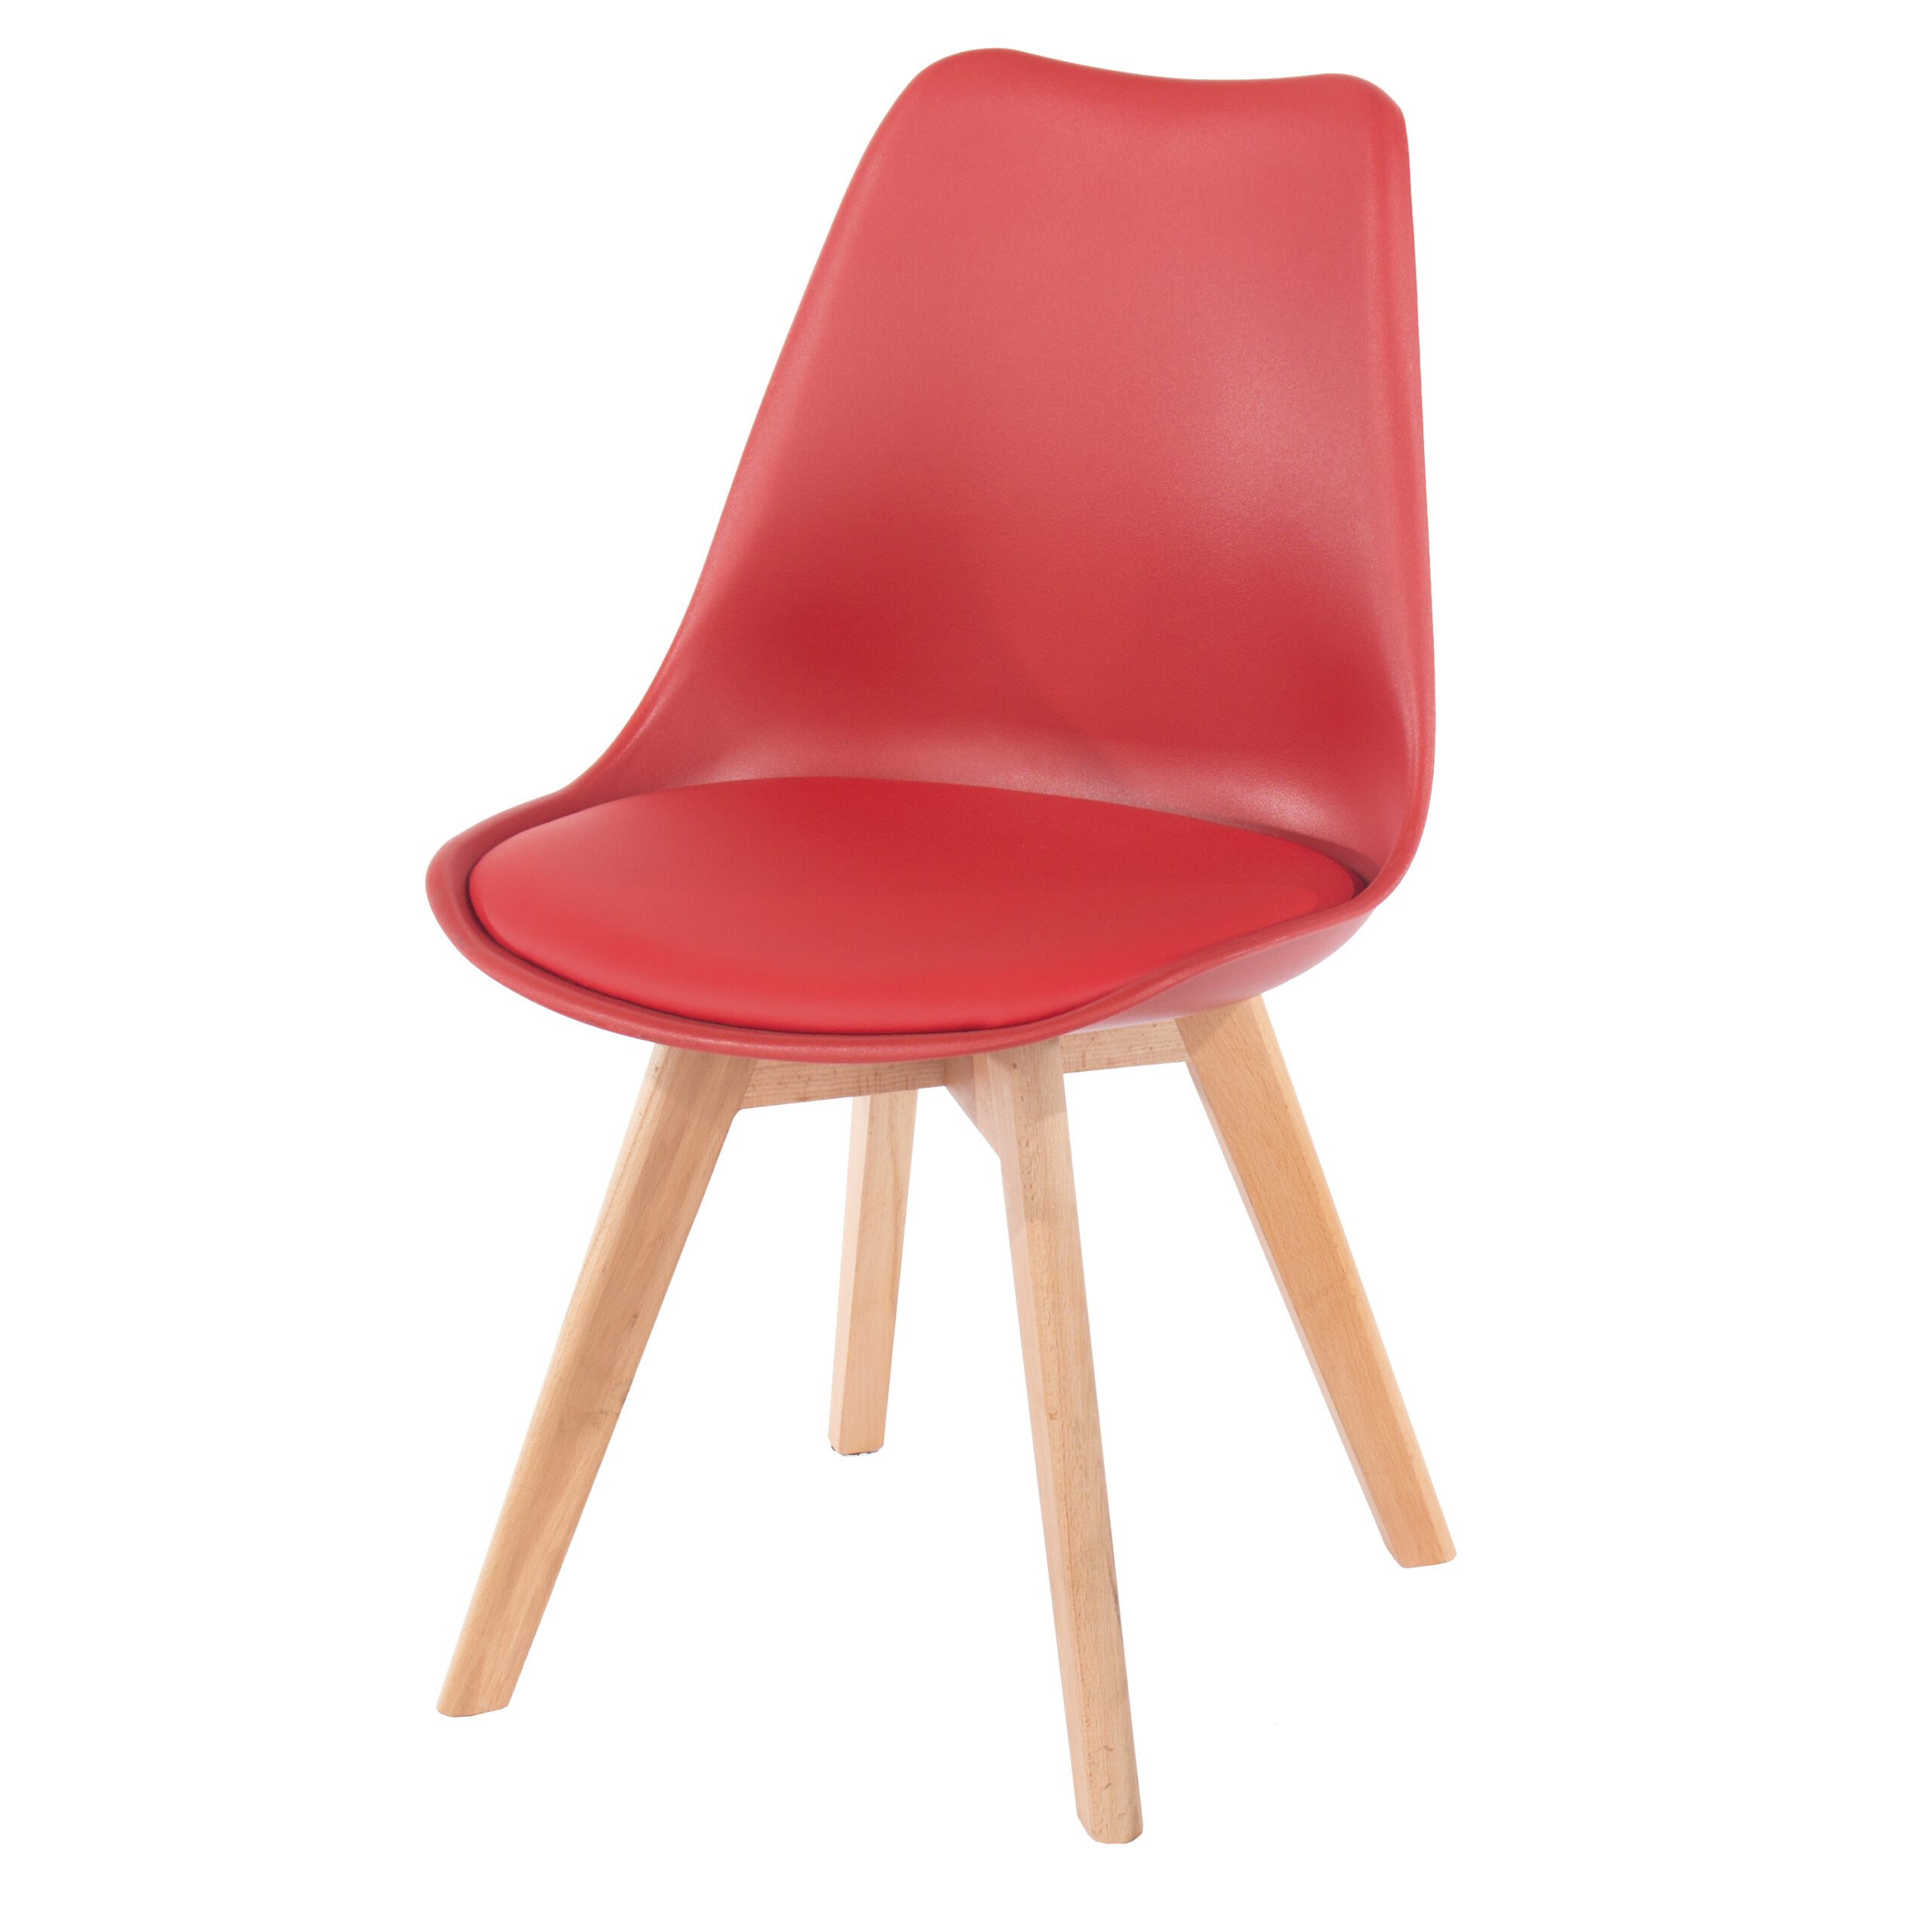 Penny red upholstered plastic chairs with wood legs (pair)